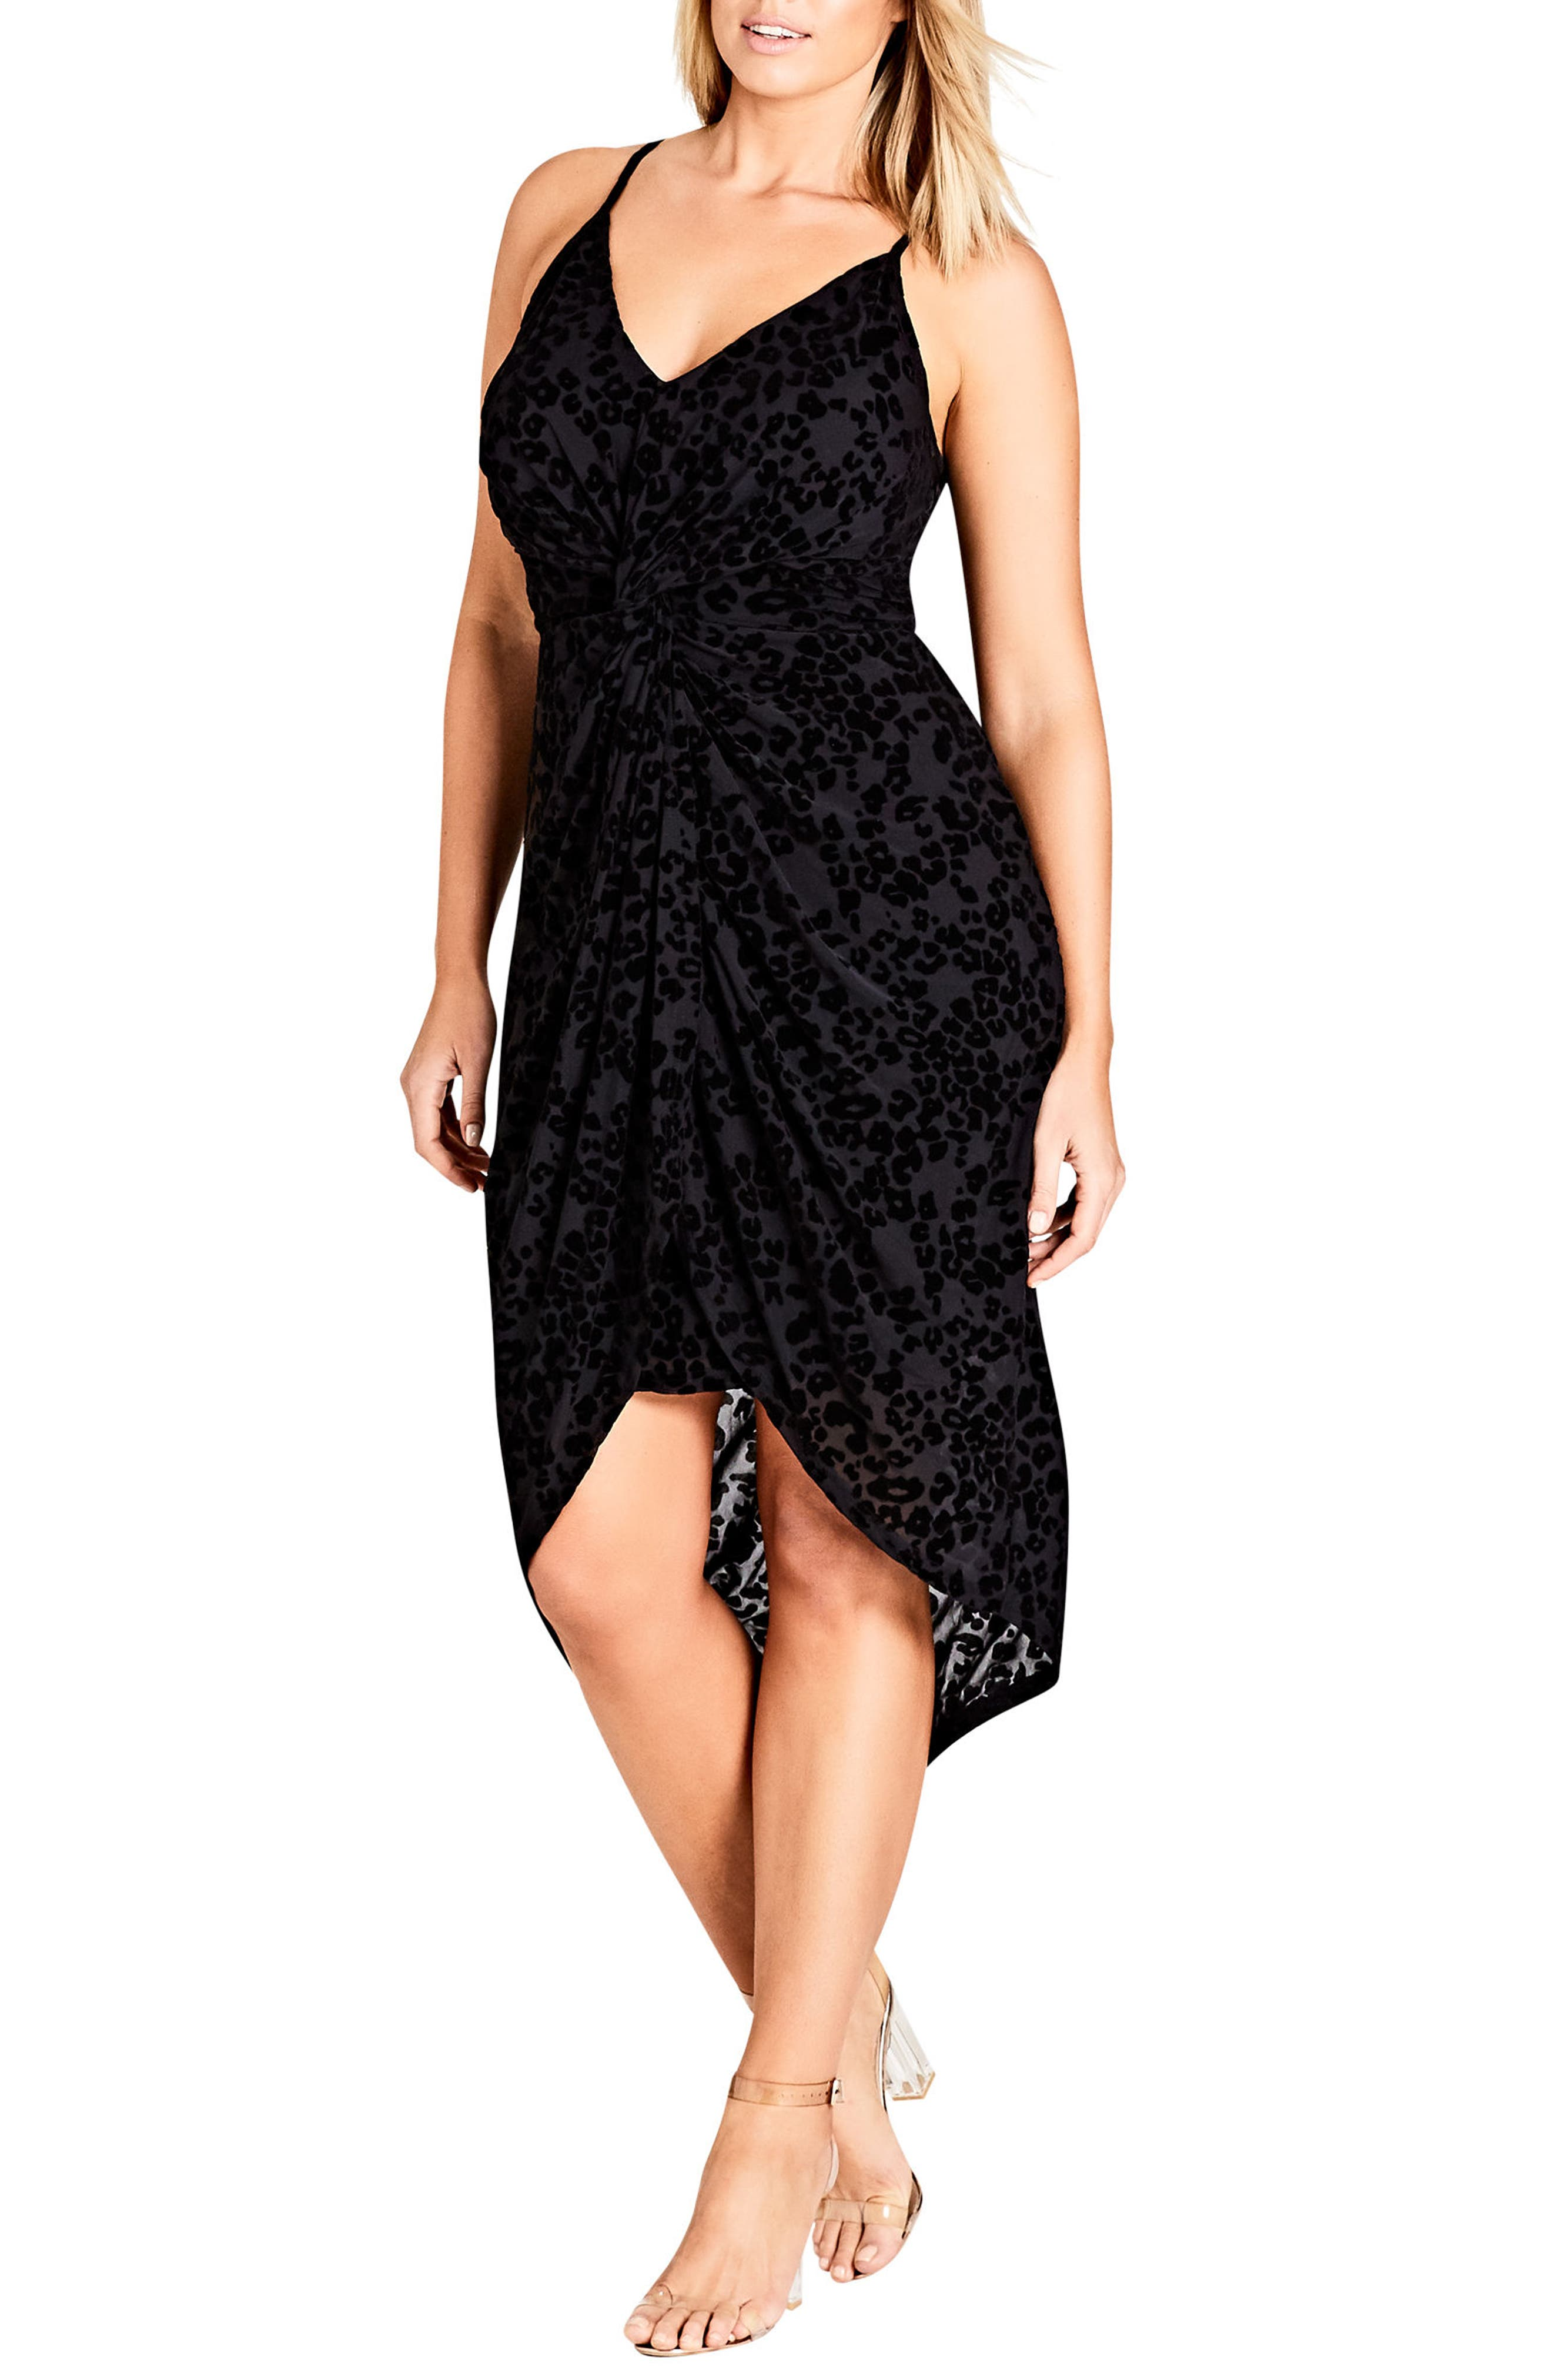 Mod Drape Dress,                             Main thumbnail 1, color,                             Black